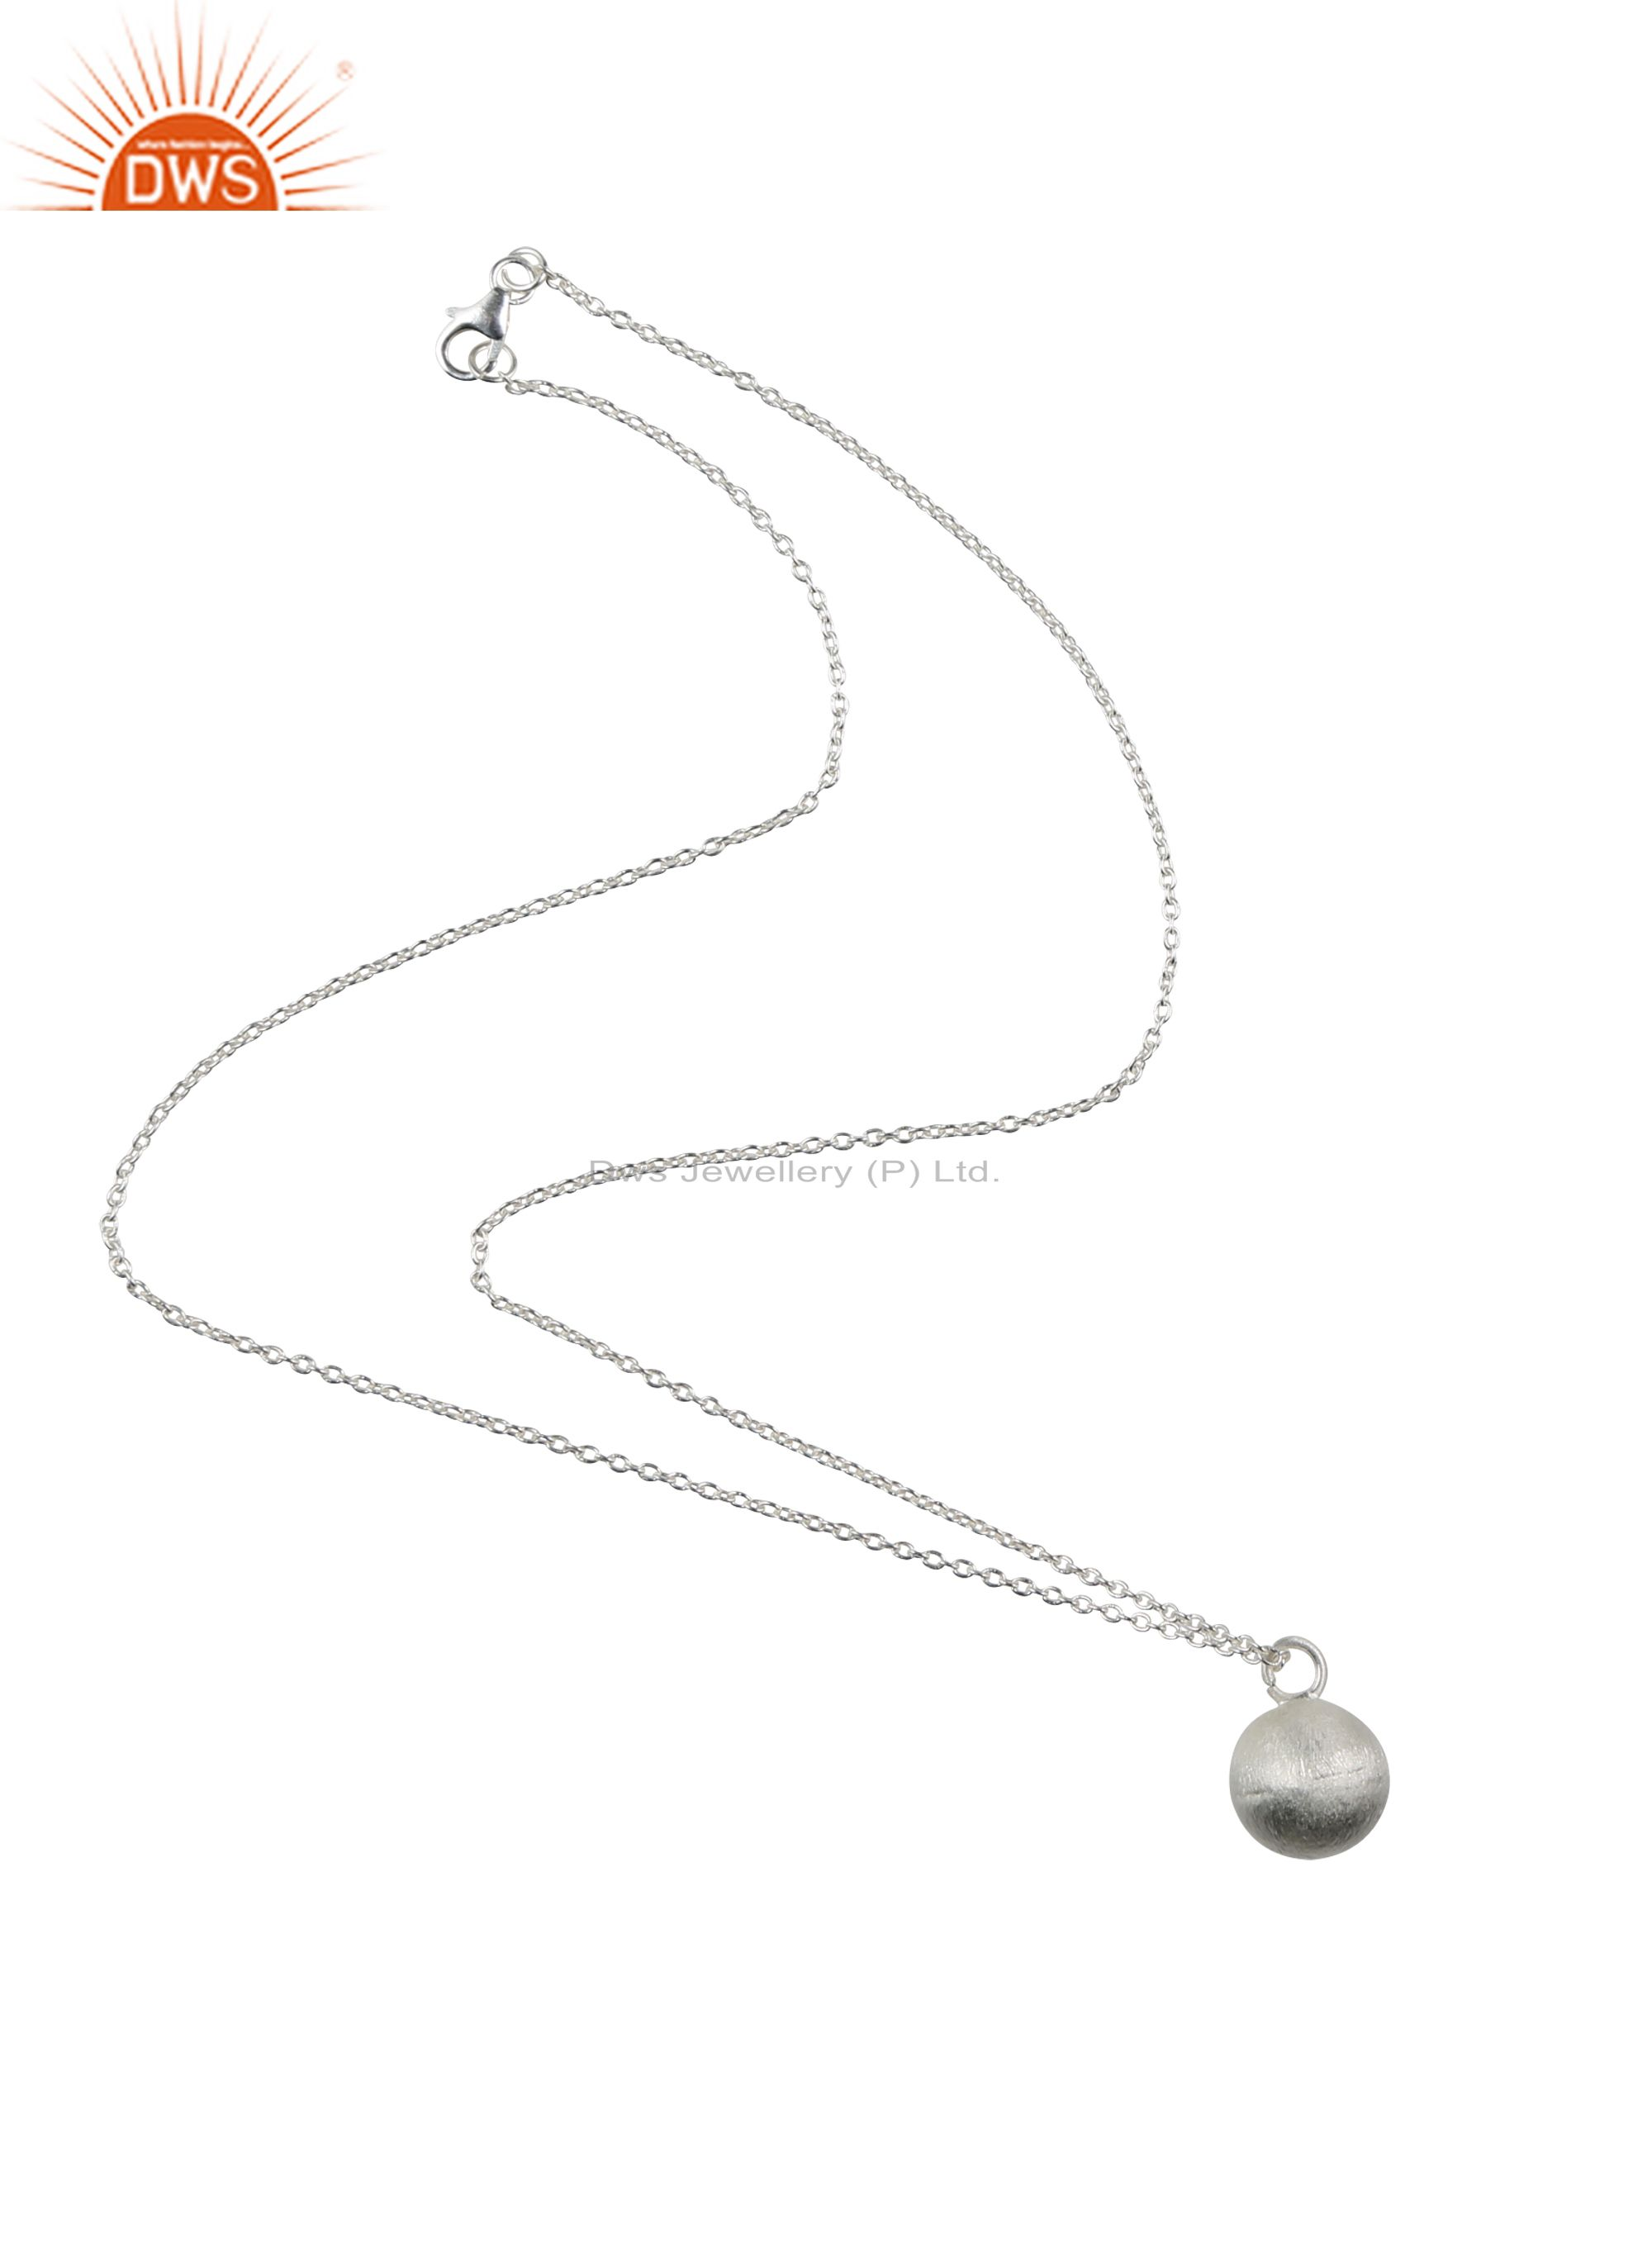 Handmade 925 Sterling Silver Spheres Pendant With 20